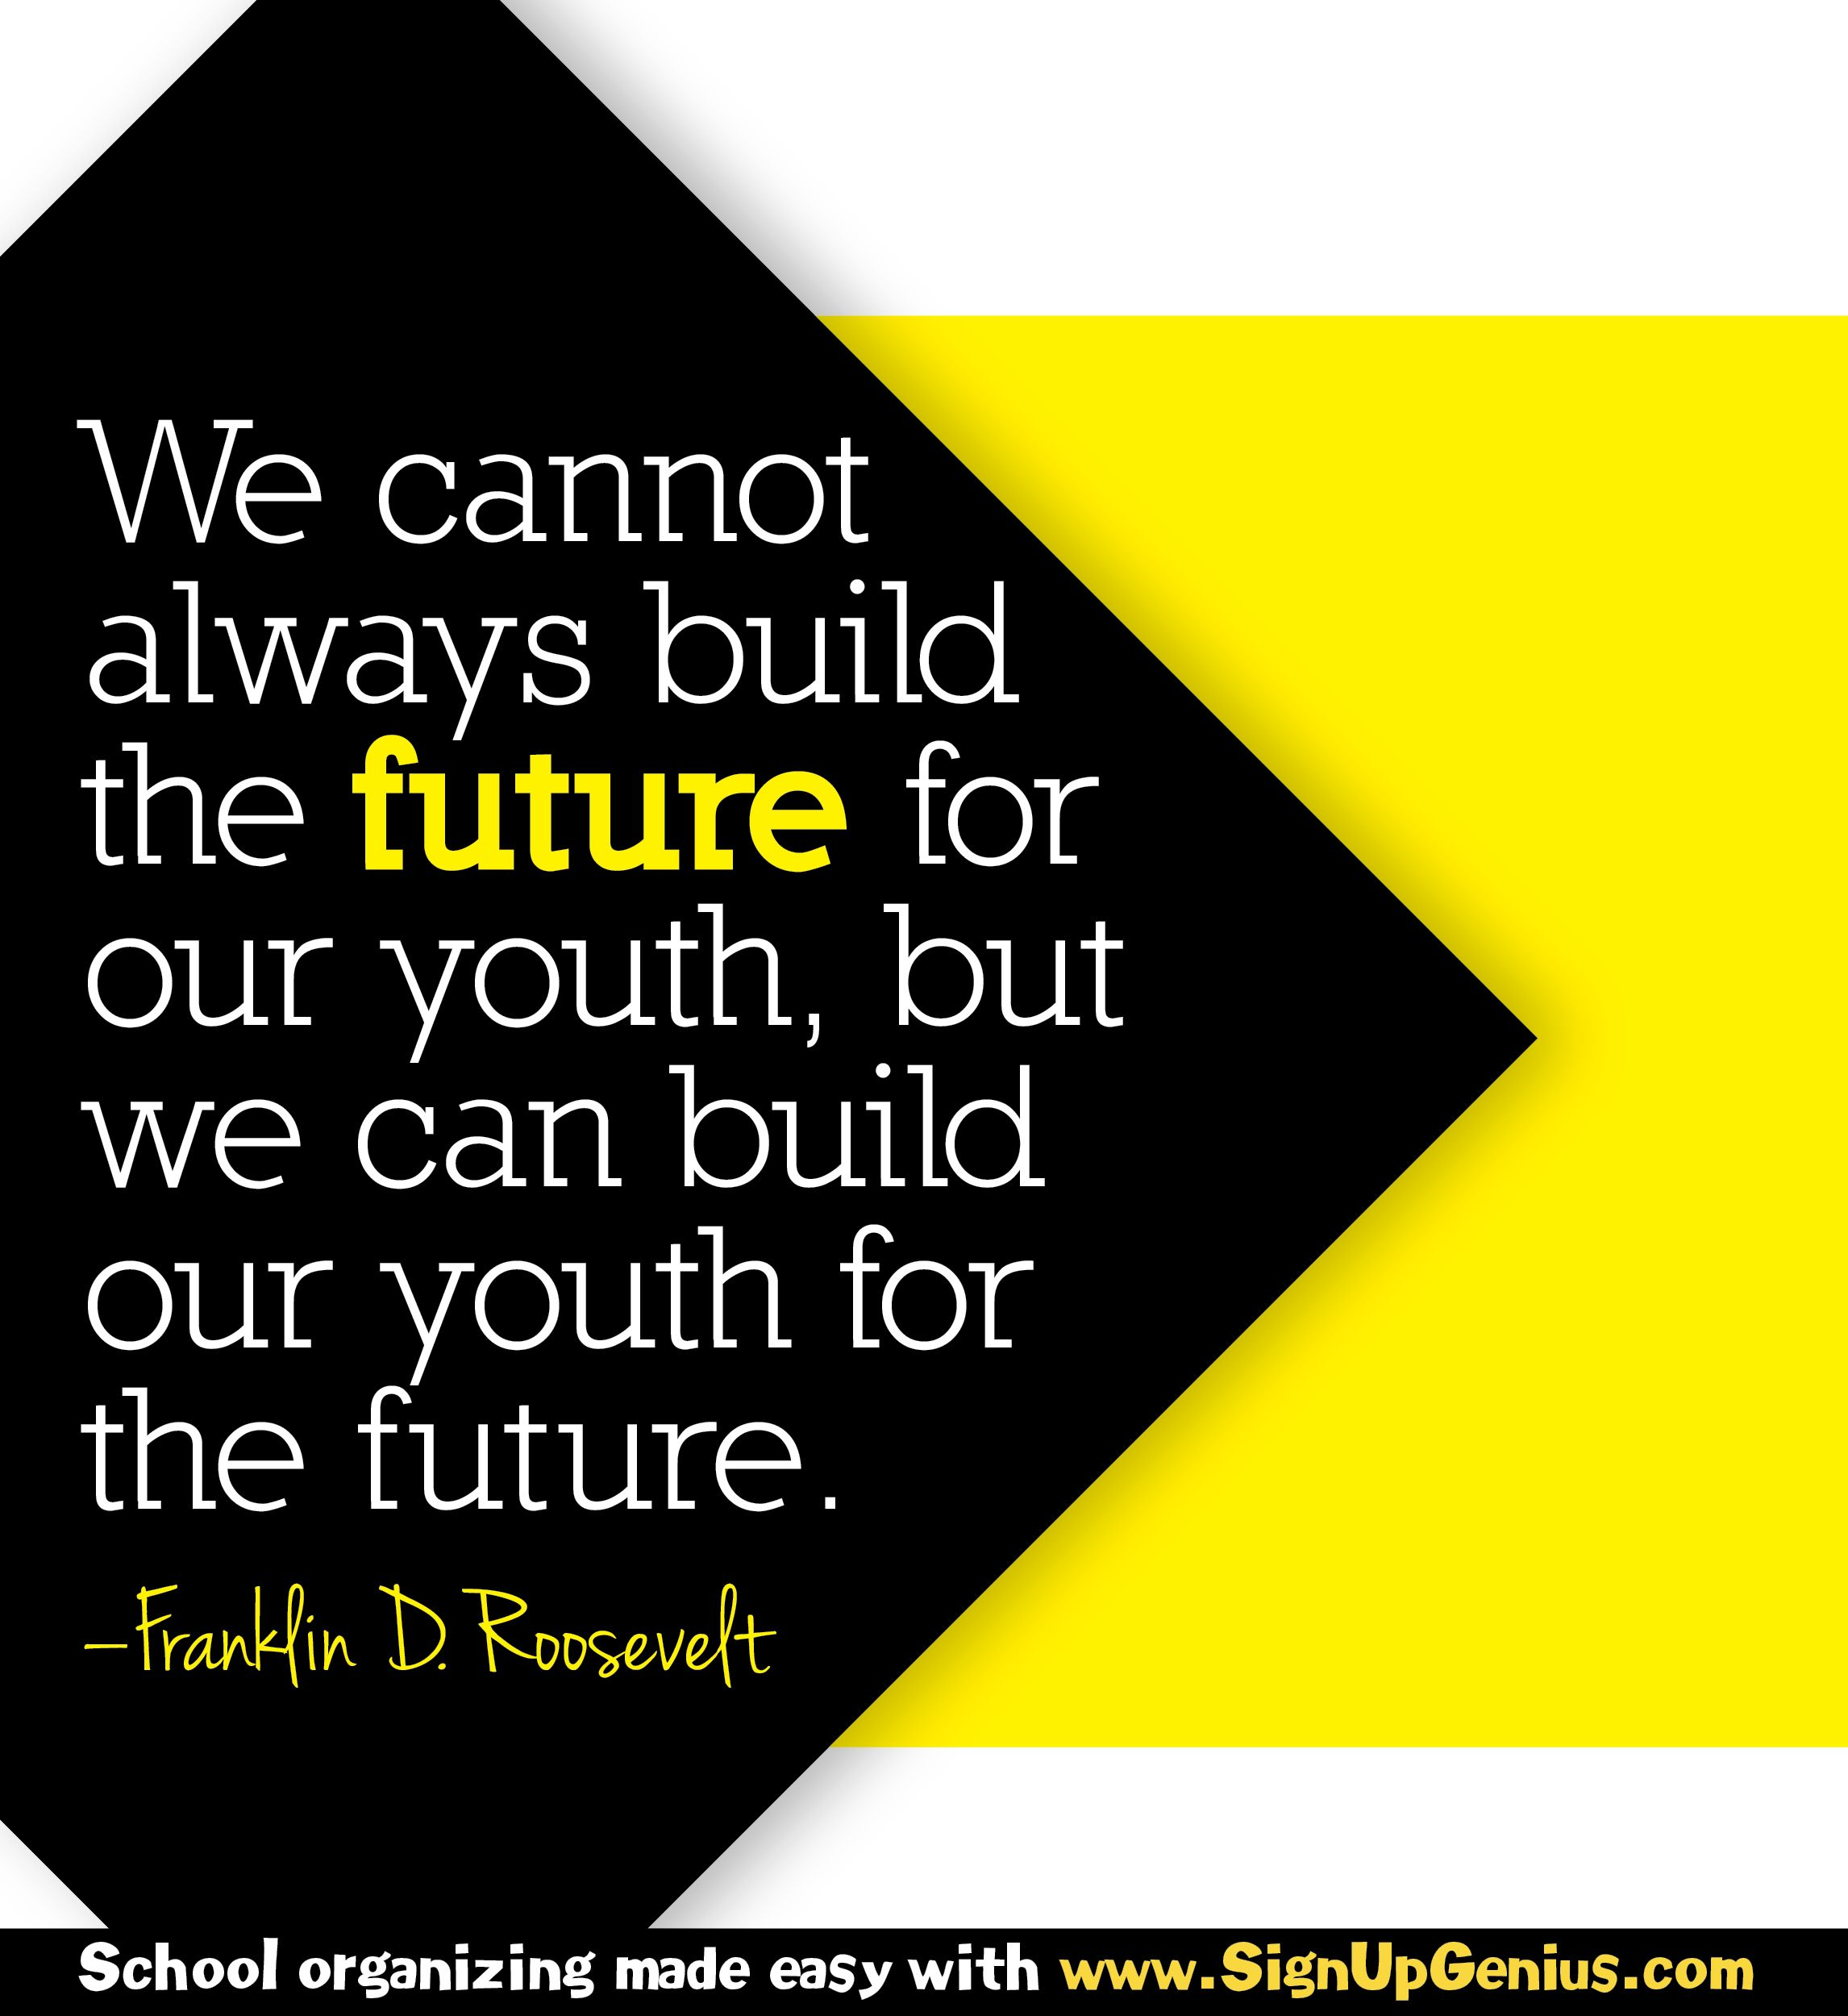 We cannot always build the future for our youth, but we can build